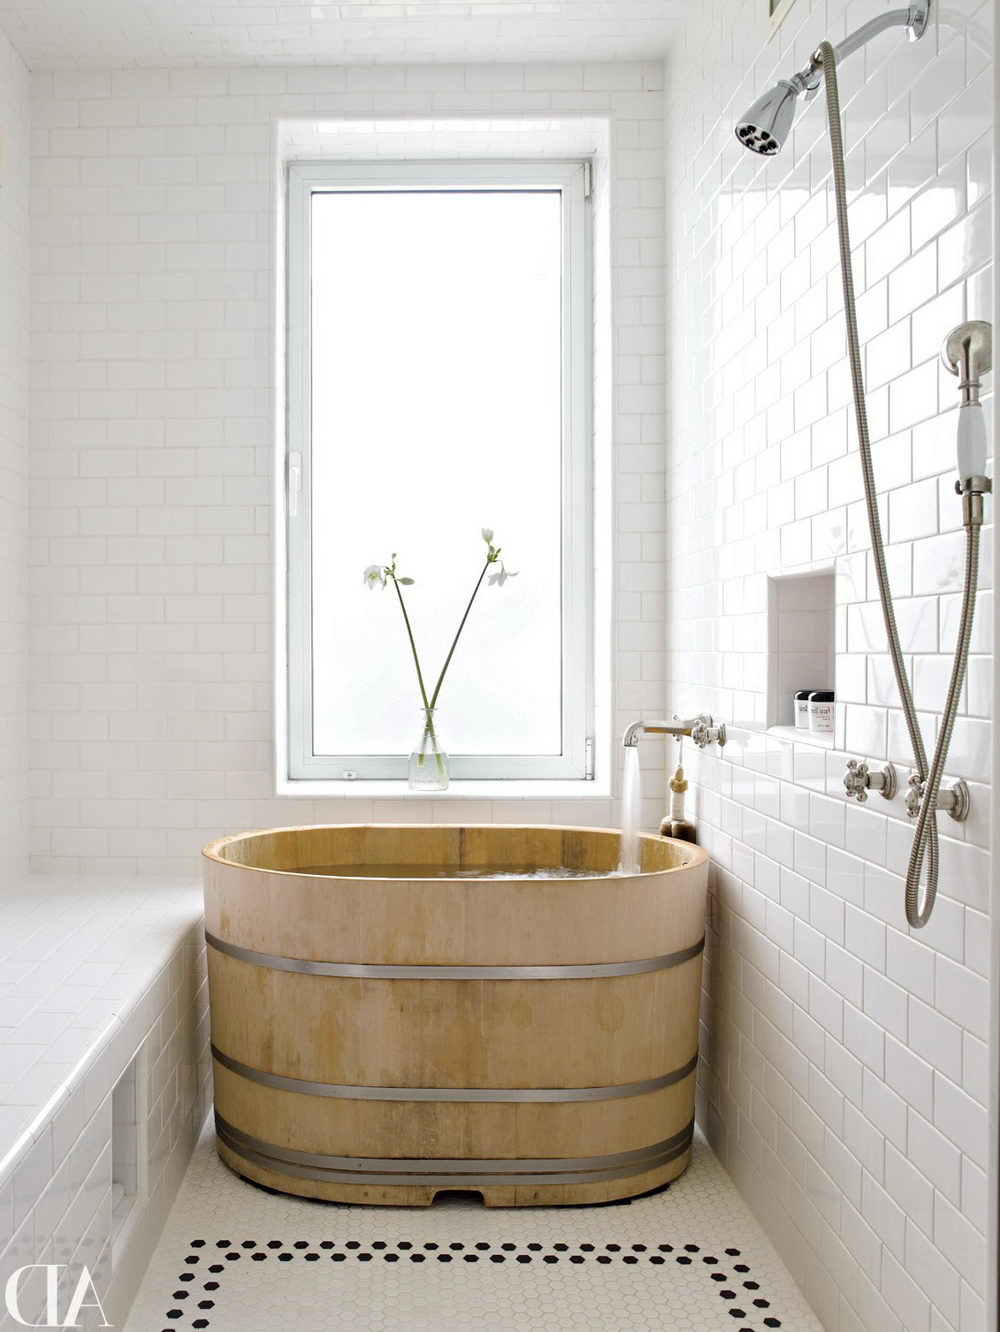 Japanese Soaking Tub - Top Ideas for Installing Short Bathtubs in ...